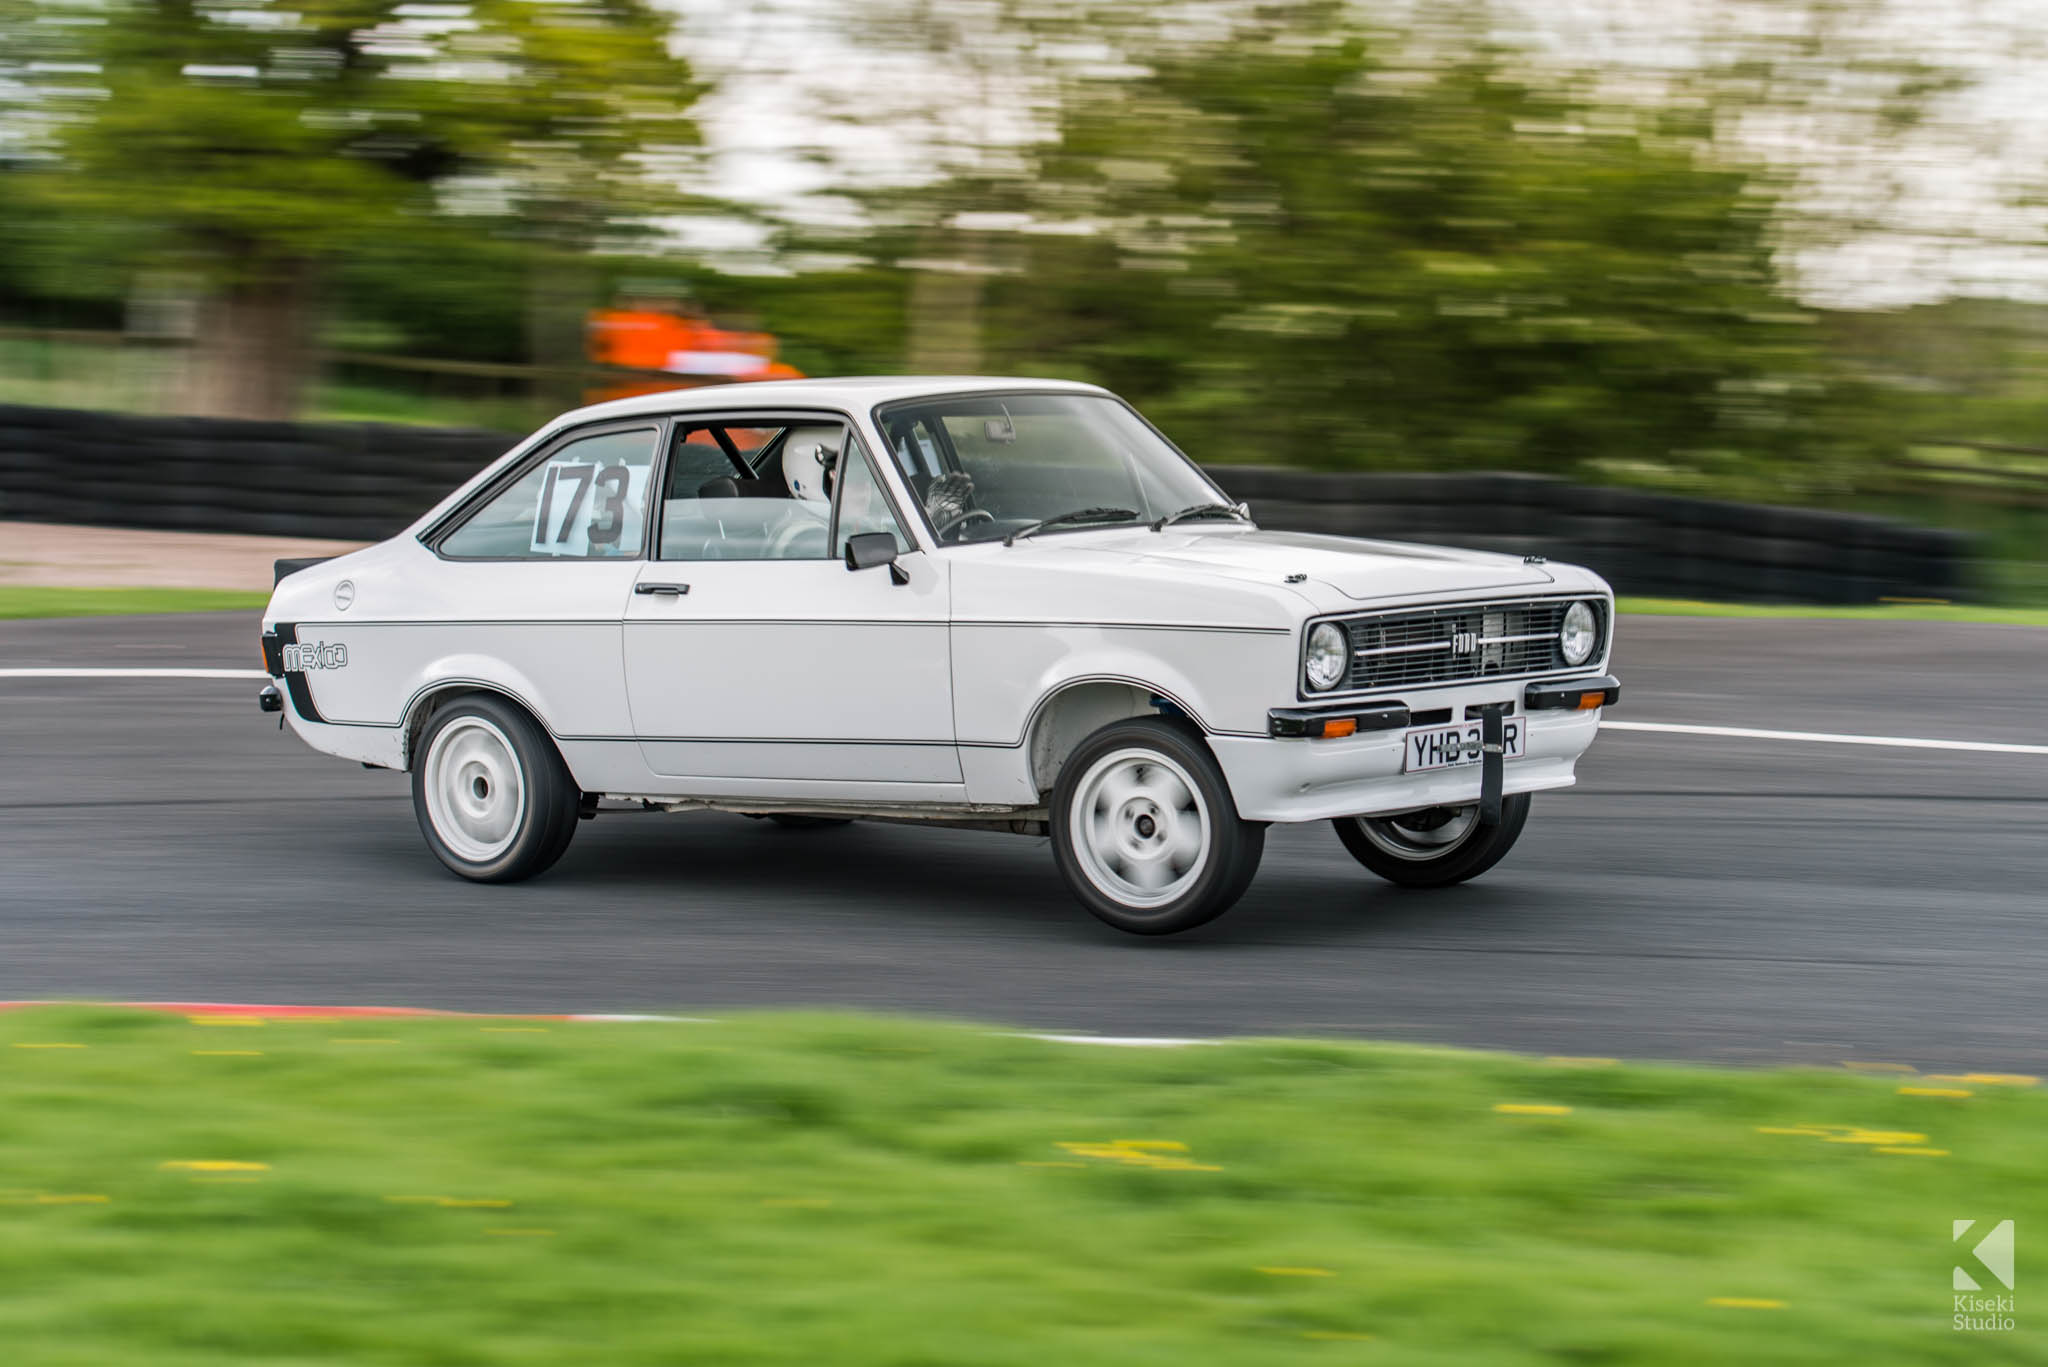 Ford Escort Mk2 Drifting - Harewood Speed Hillclimb